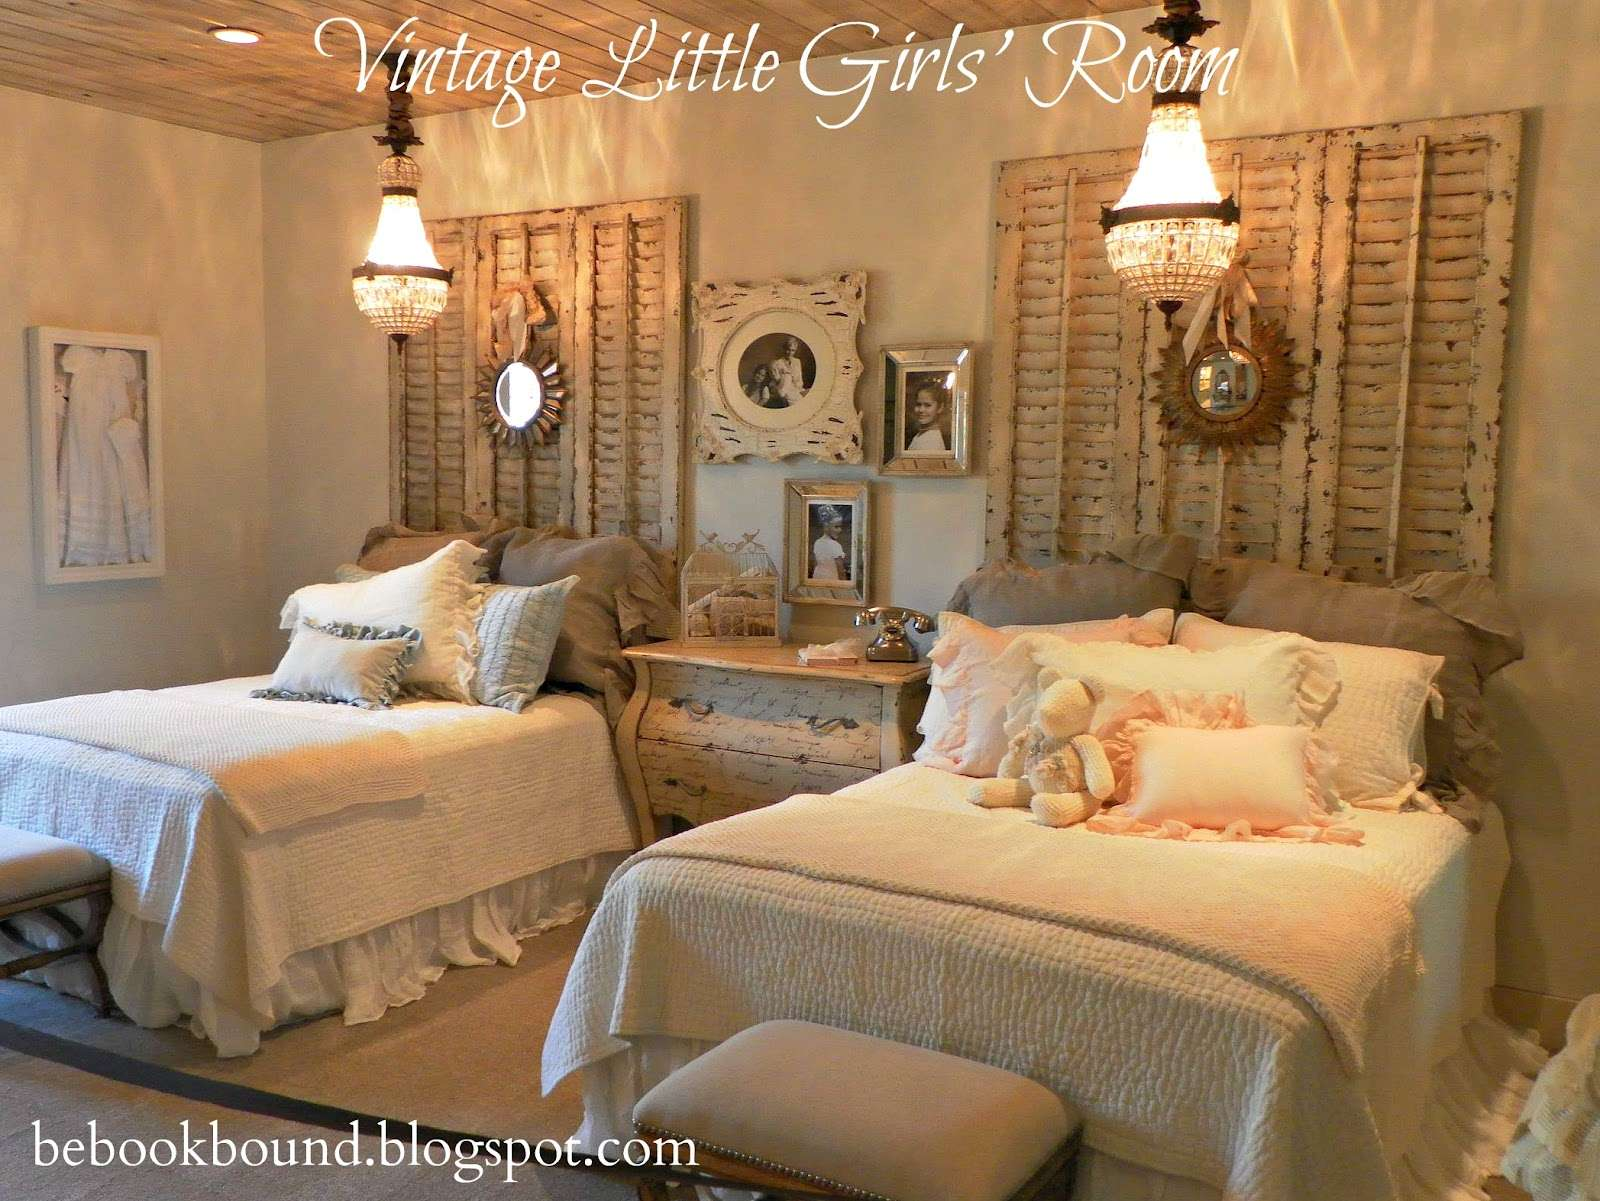 Bound Little House Prairie Vintage Bedroom Girls